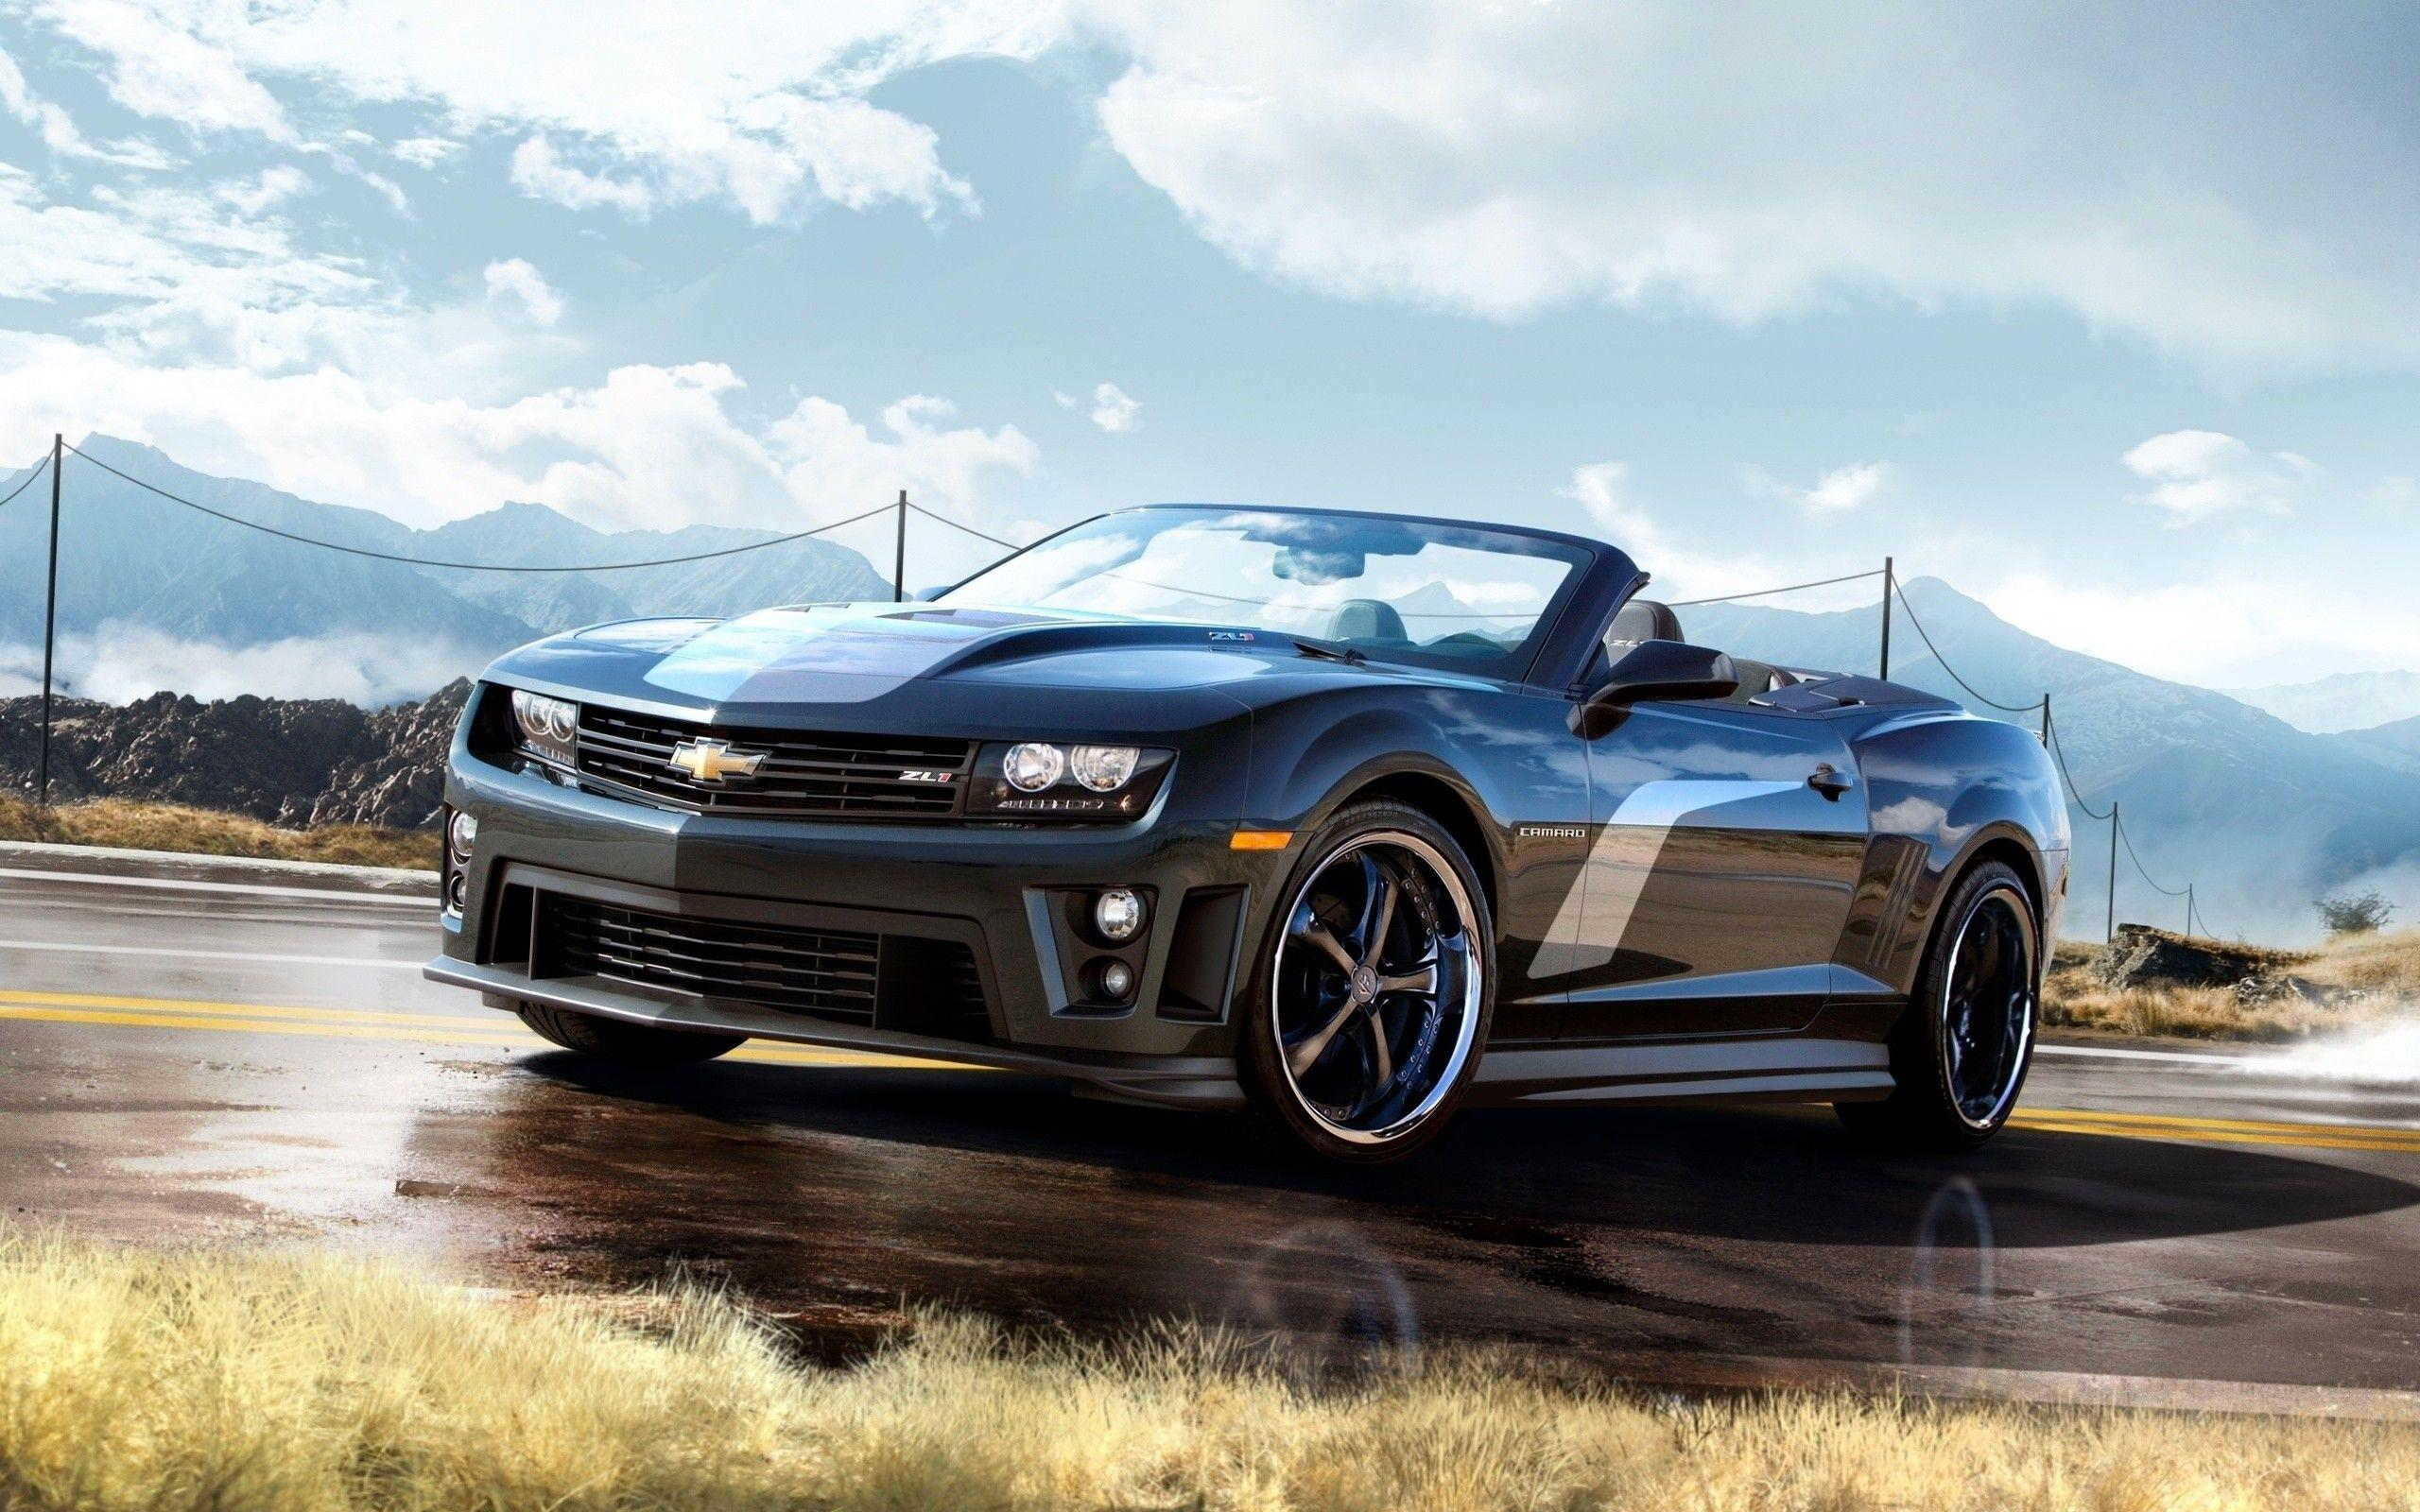 Camaro Zl1 Wallpapers 2560x1600